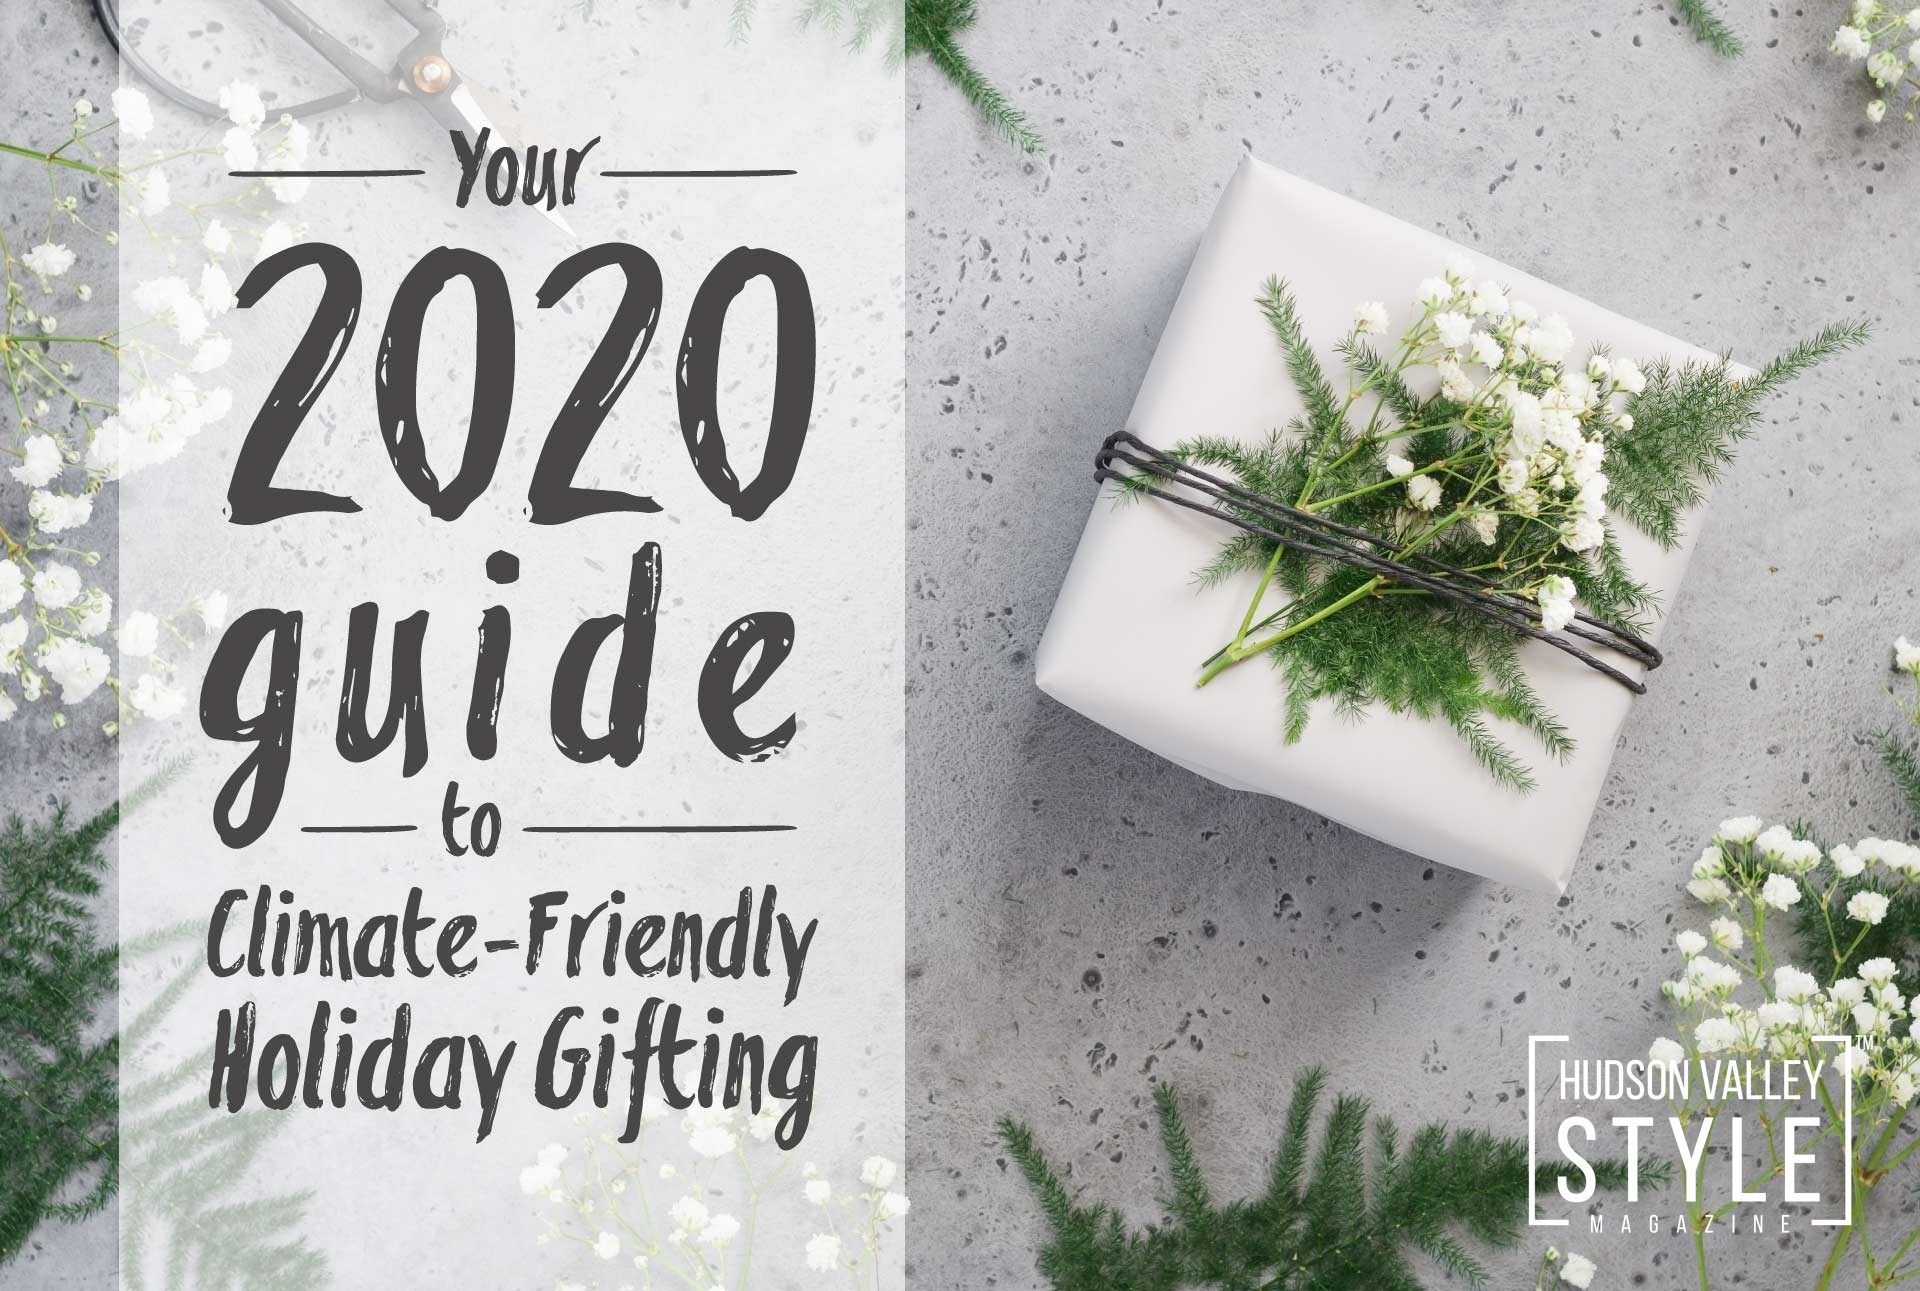 Your 2020 guide to climate-friendly holiday gifting